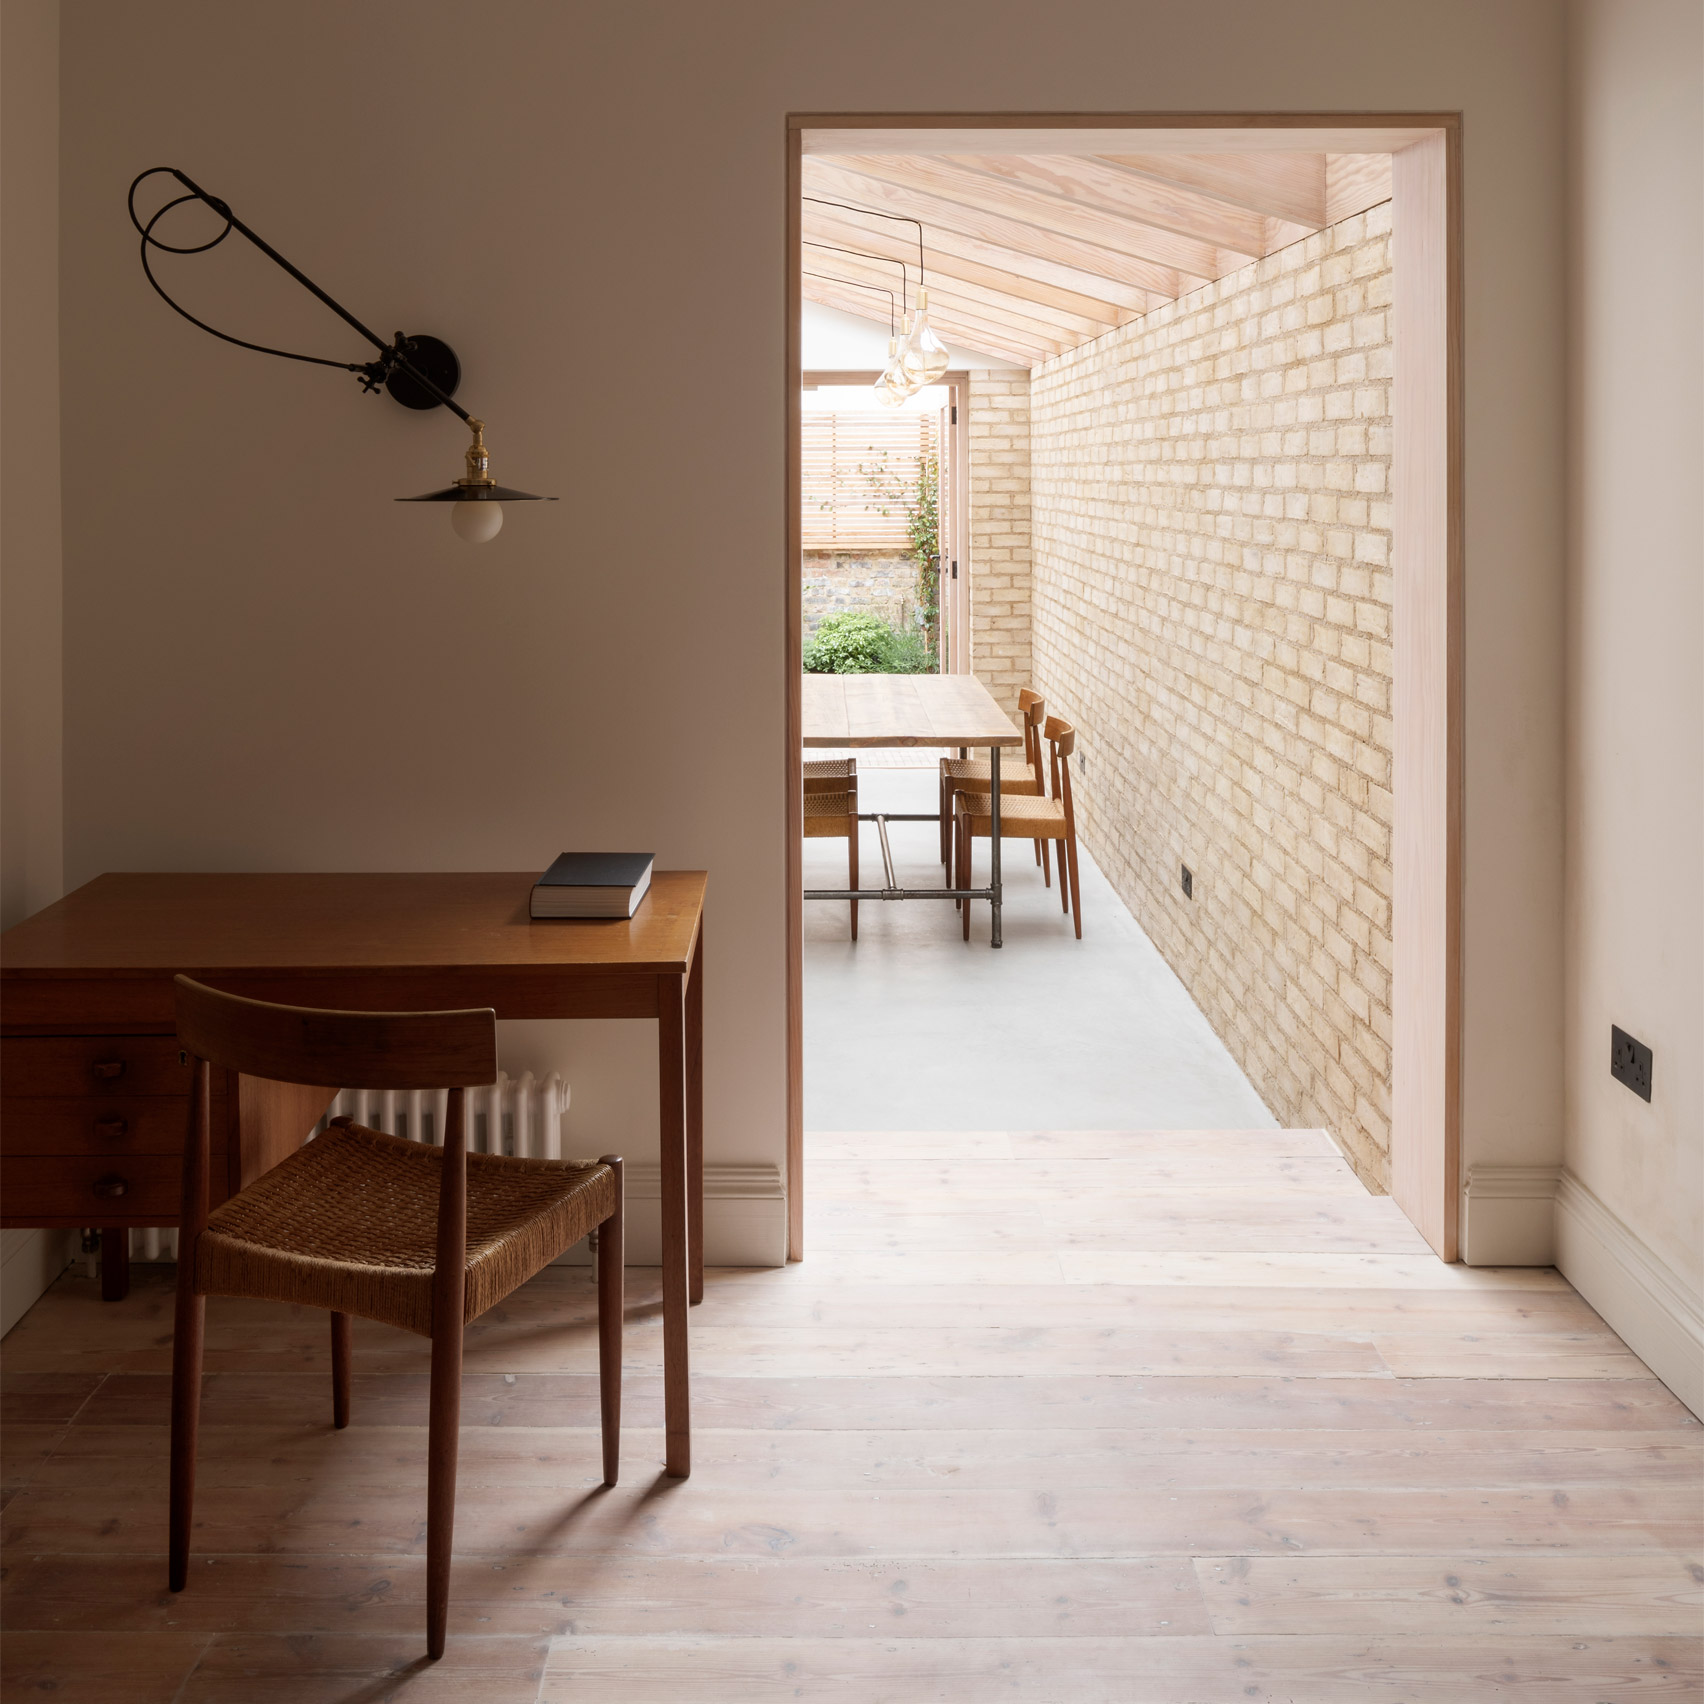 Vestry Road, Southwark, by Oliver Leech Architects